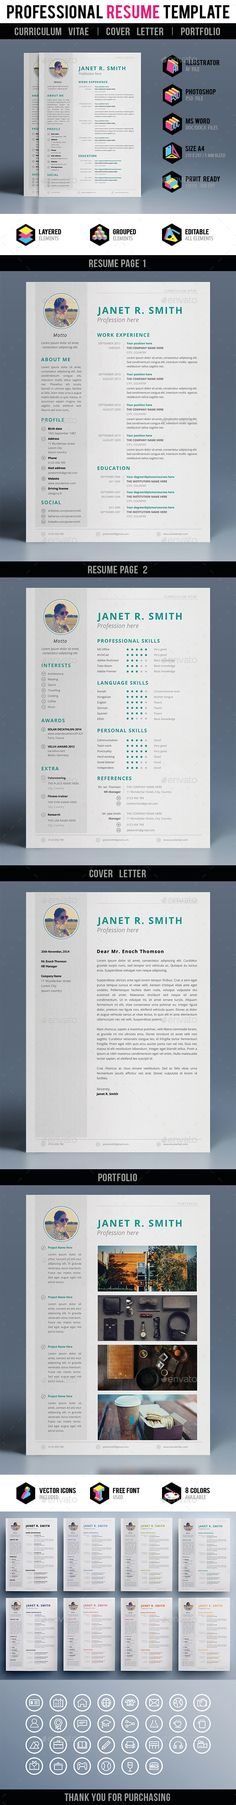 Art Director - Resume CV Portfolio Resume cv, Art director and - art director resumes